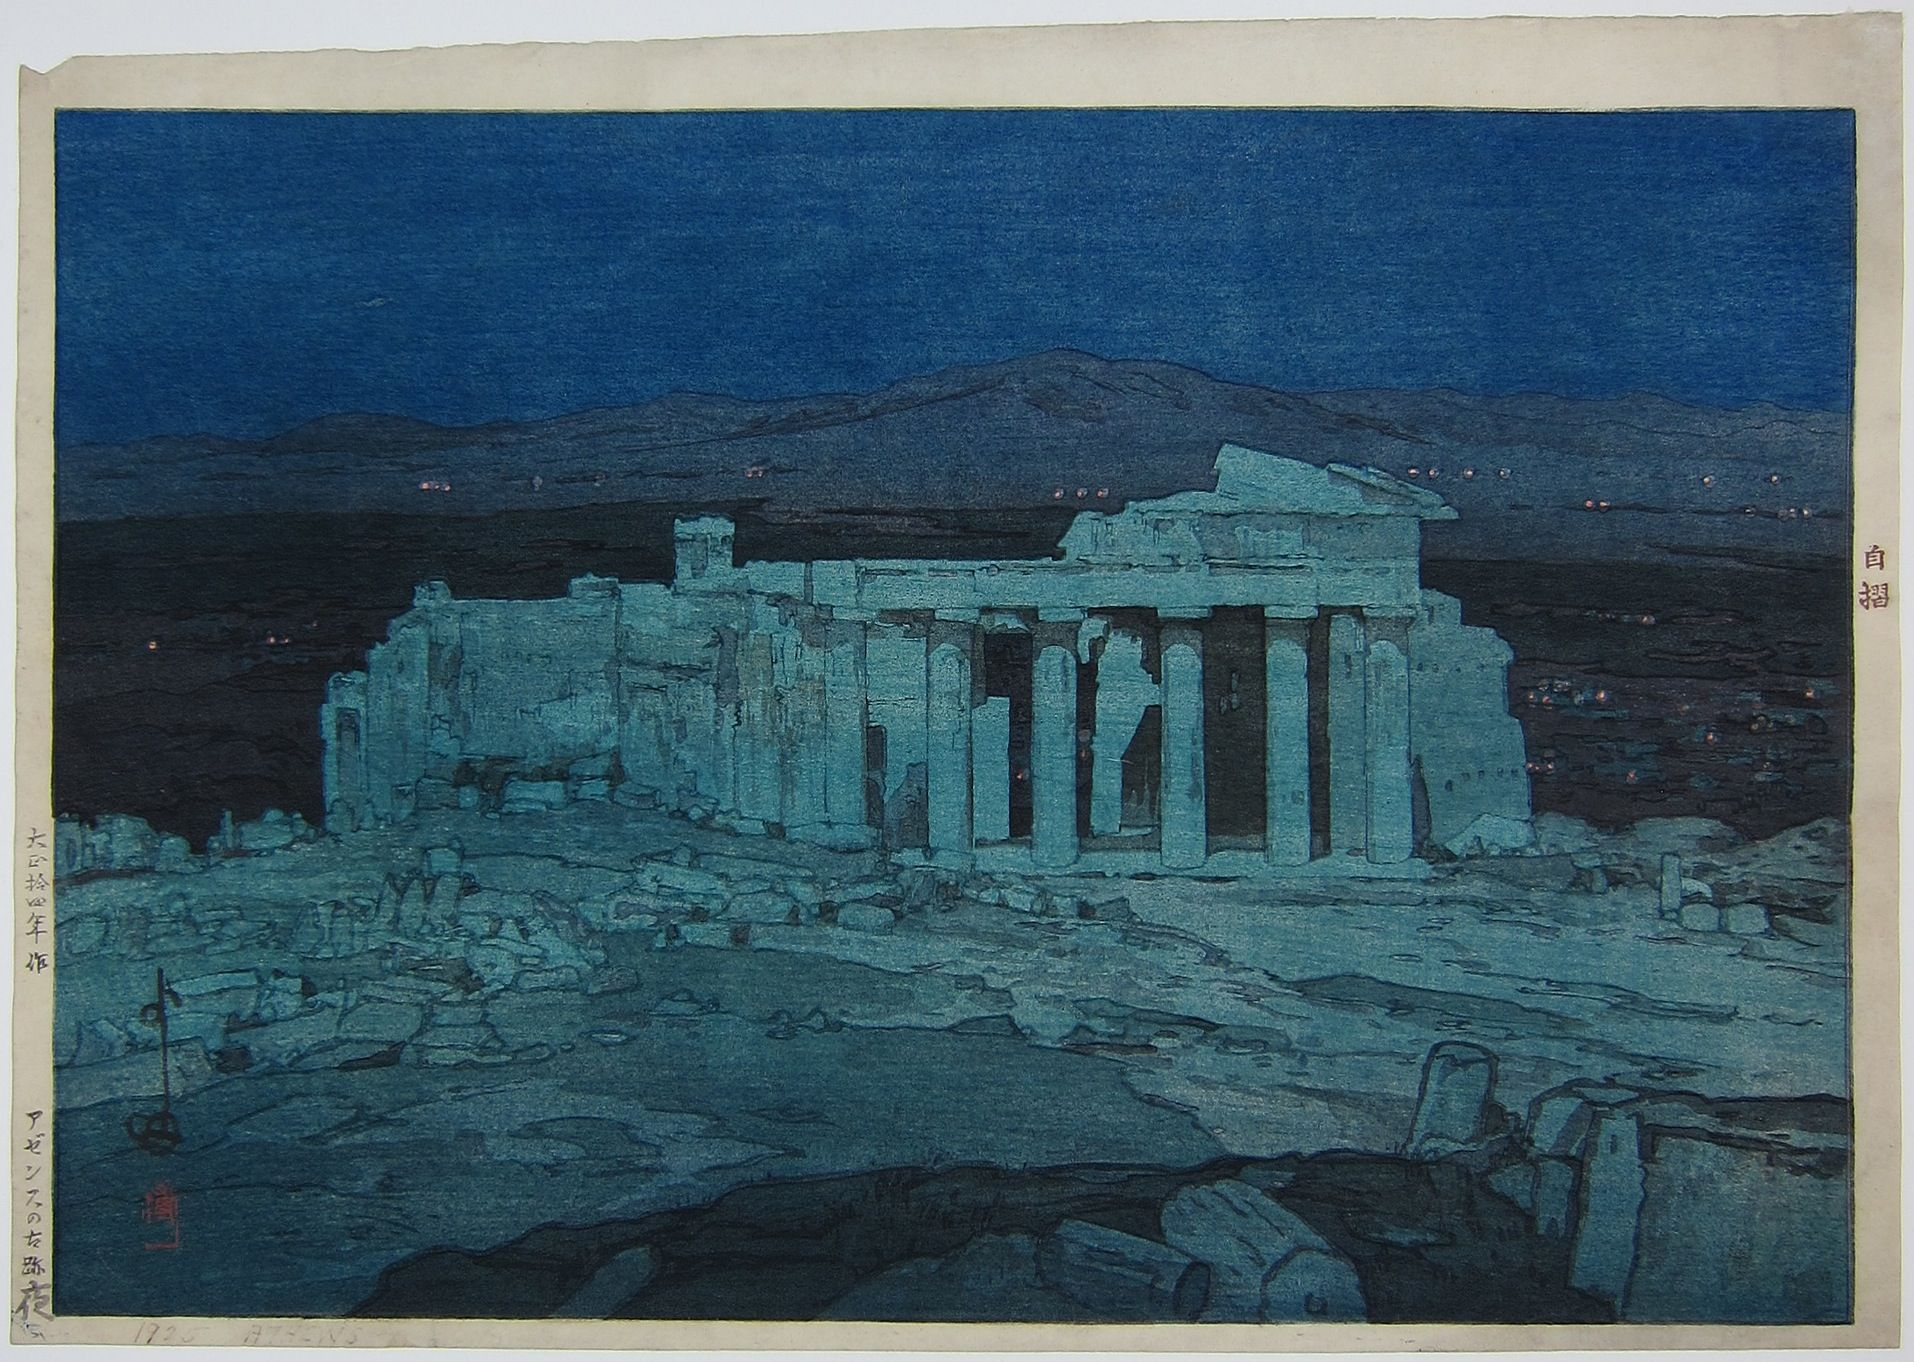 The Acropolis at Night. 1925.